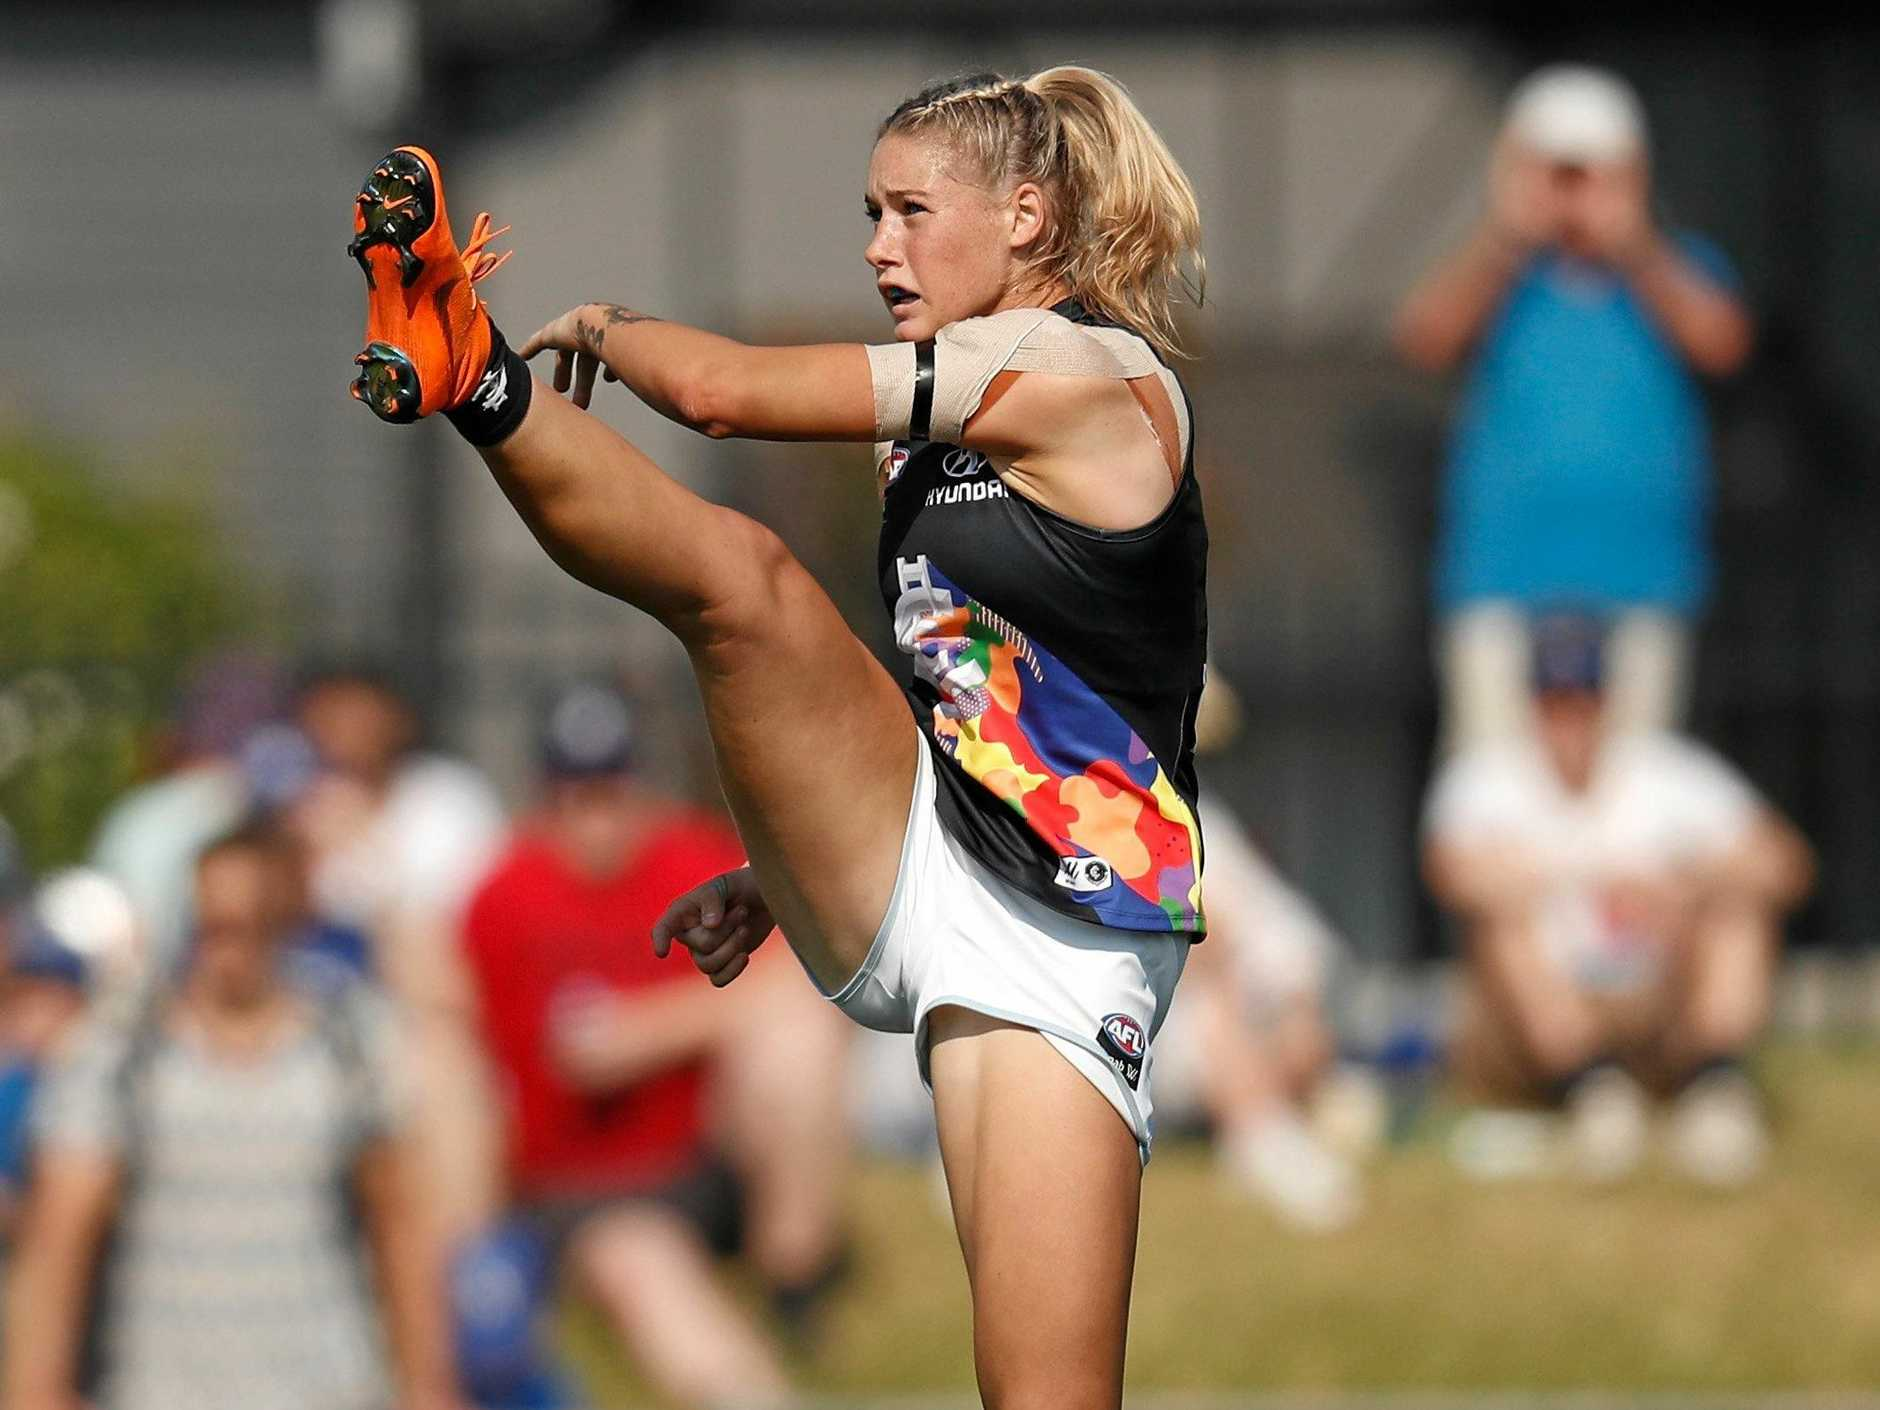 FLYING HIGH: Tayla Harris of the Carlton Blues kicks the ball. This image has quickly become one of the most iconic in Australian sporting history.